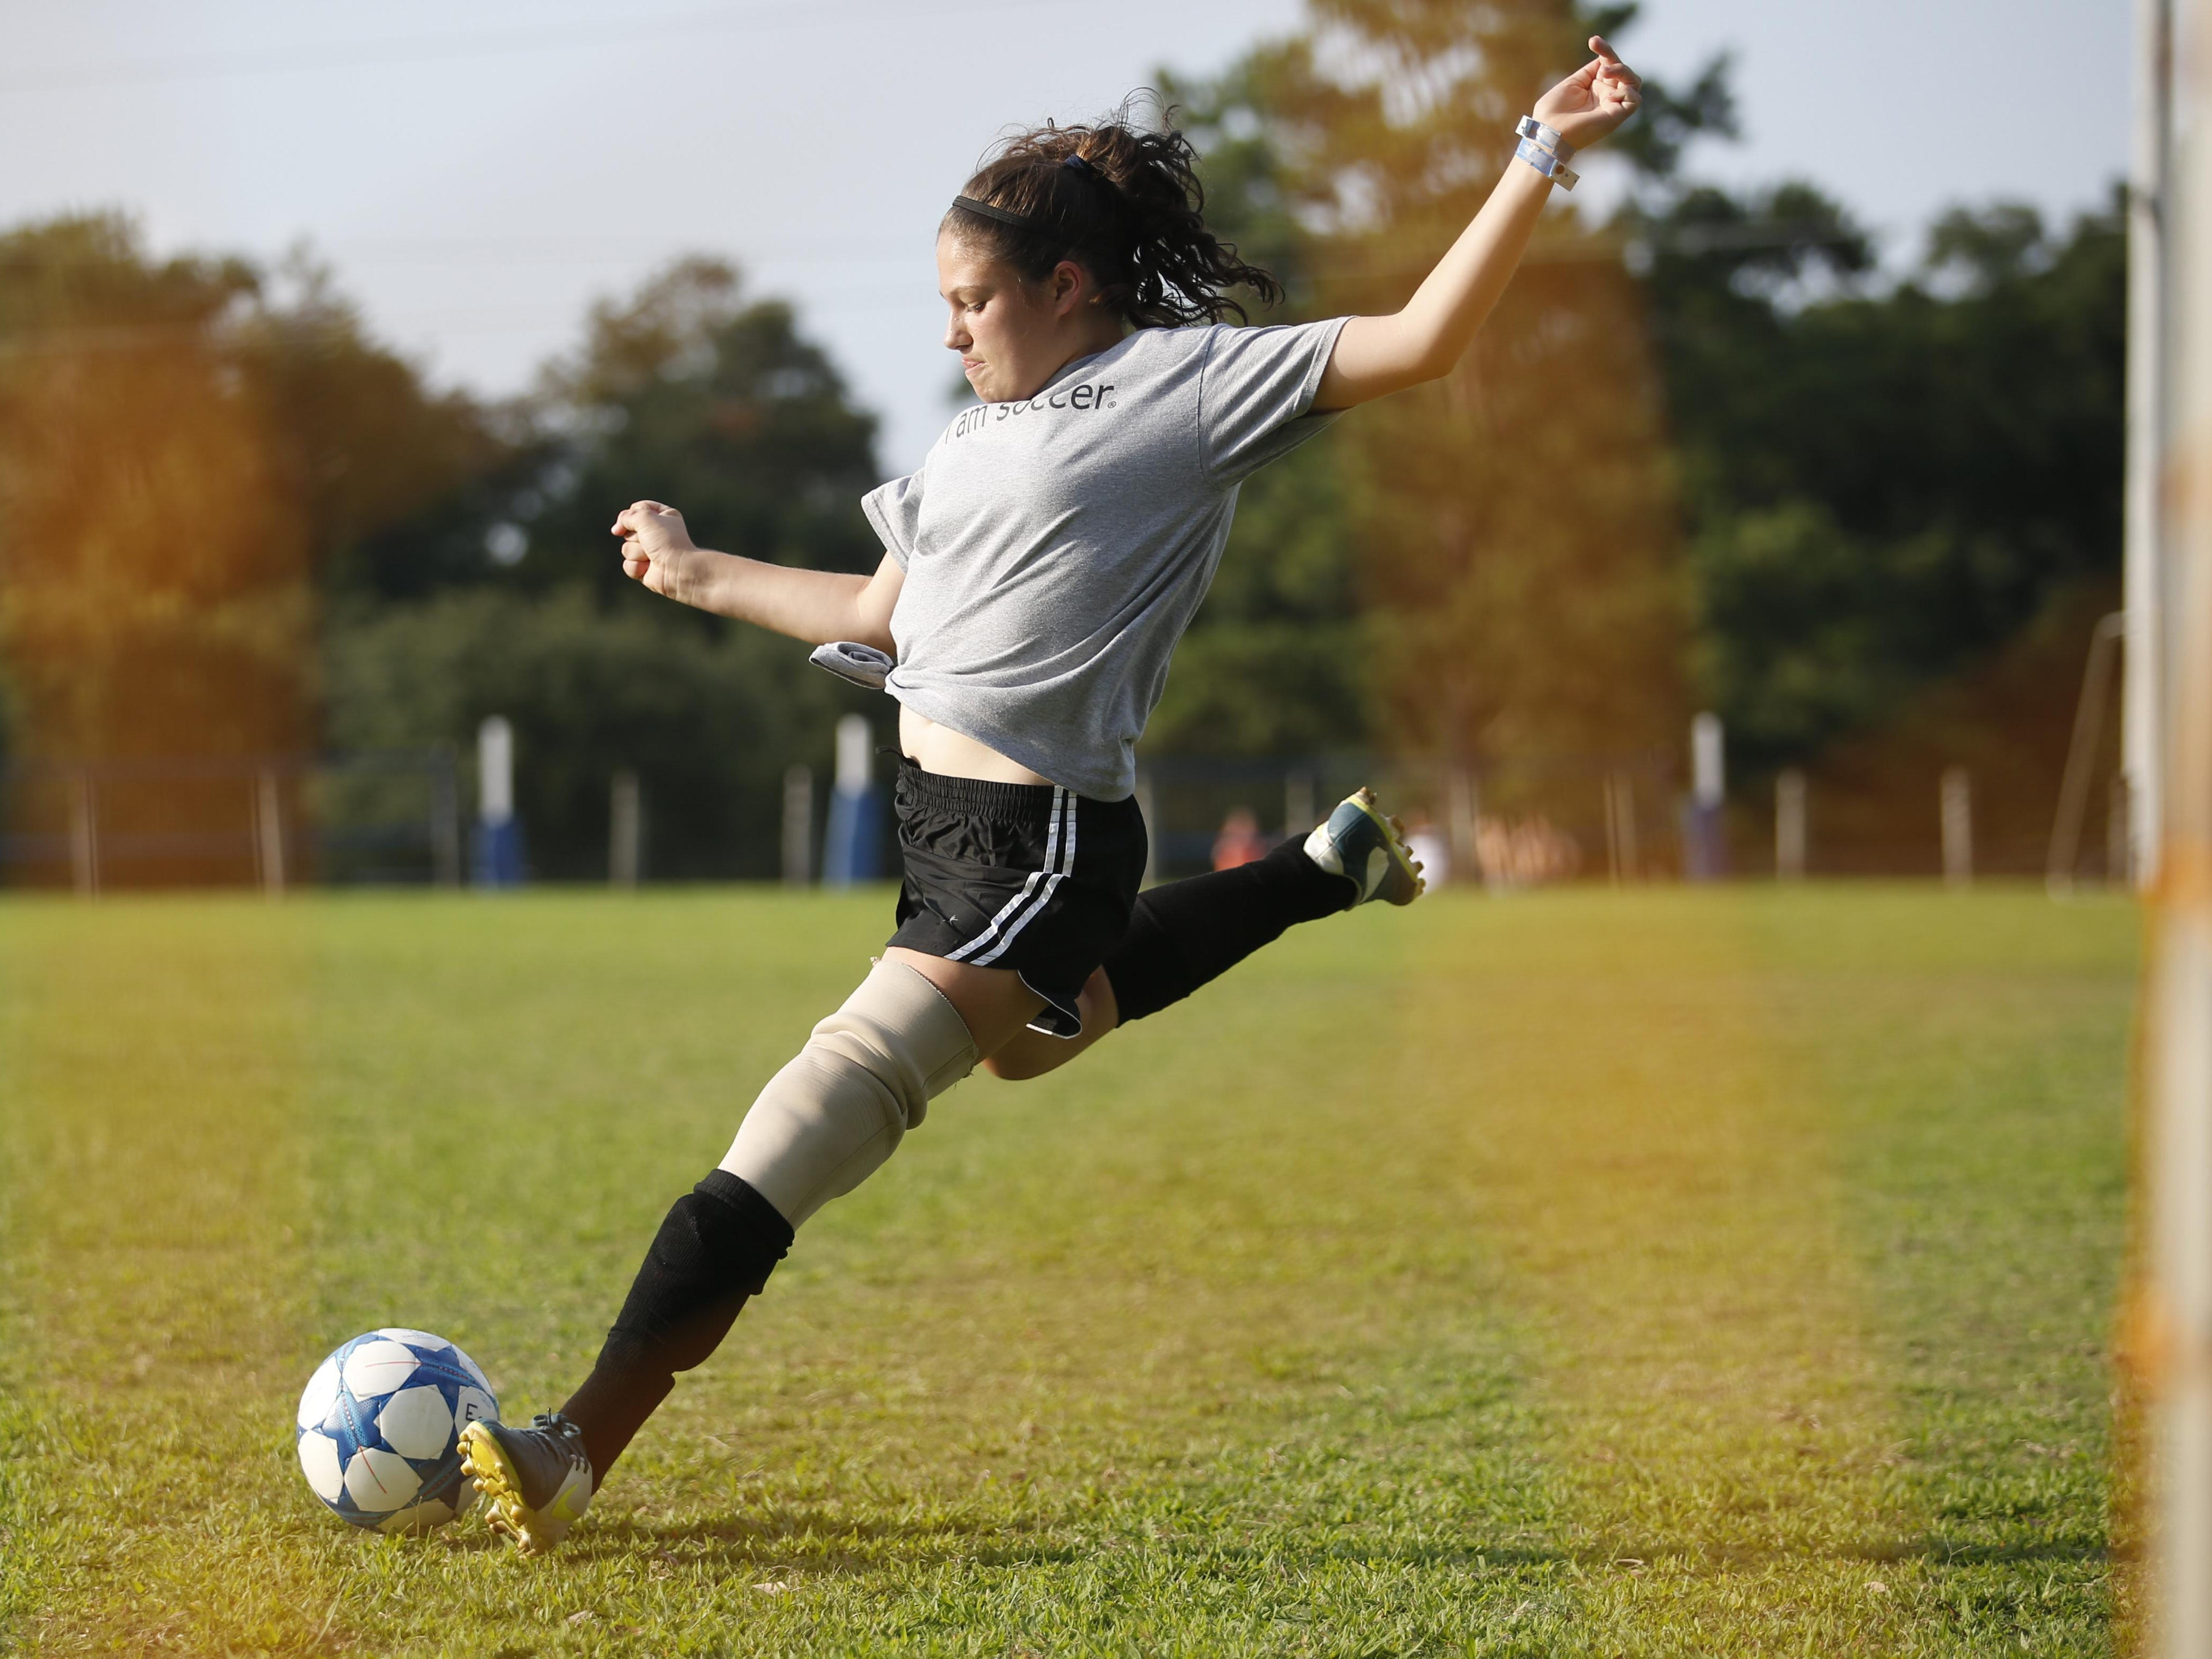 Erica Silvey, 13, who has been playing soccer since she was 5 on a prosthetic leg, takes a shot on goal before practice with her new summer league team at Tom Brown Park on Tuesday, July 7, 2015.